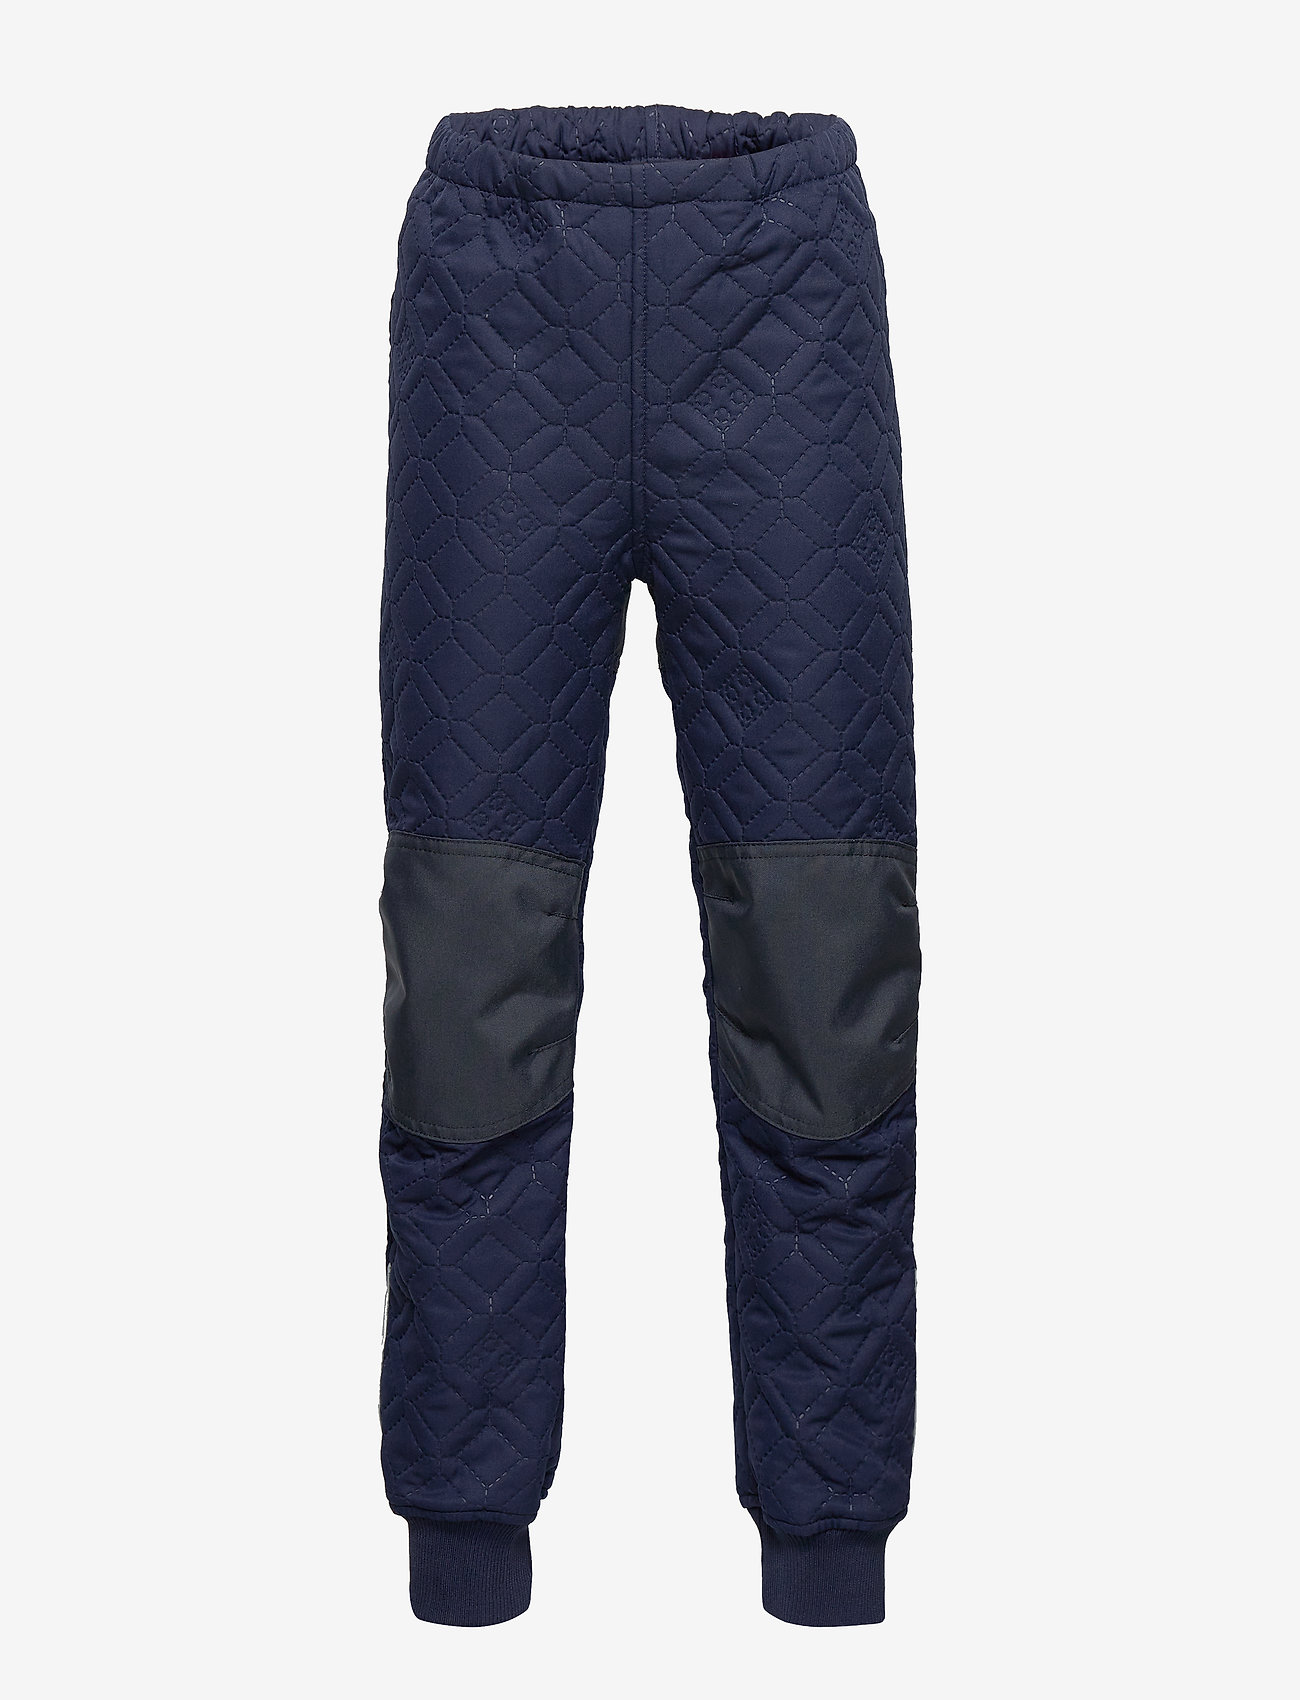 Lego wear - LWPOUL 200 -  PANT (THERMO) - bas - dark navy - 0